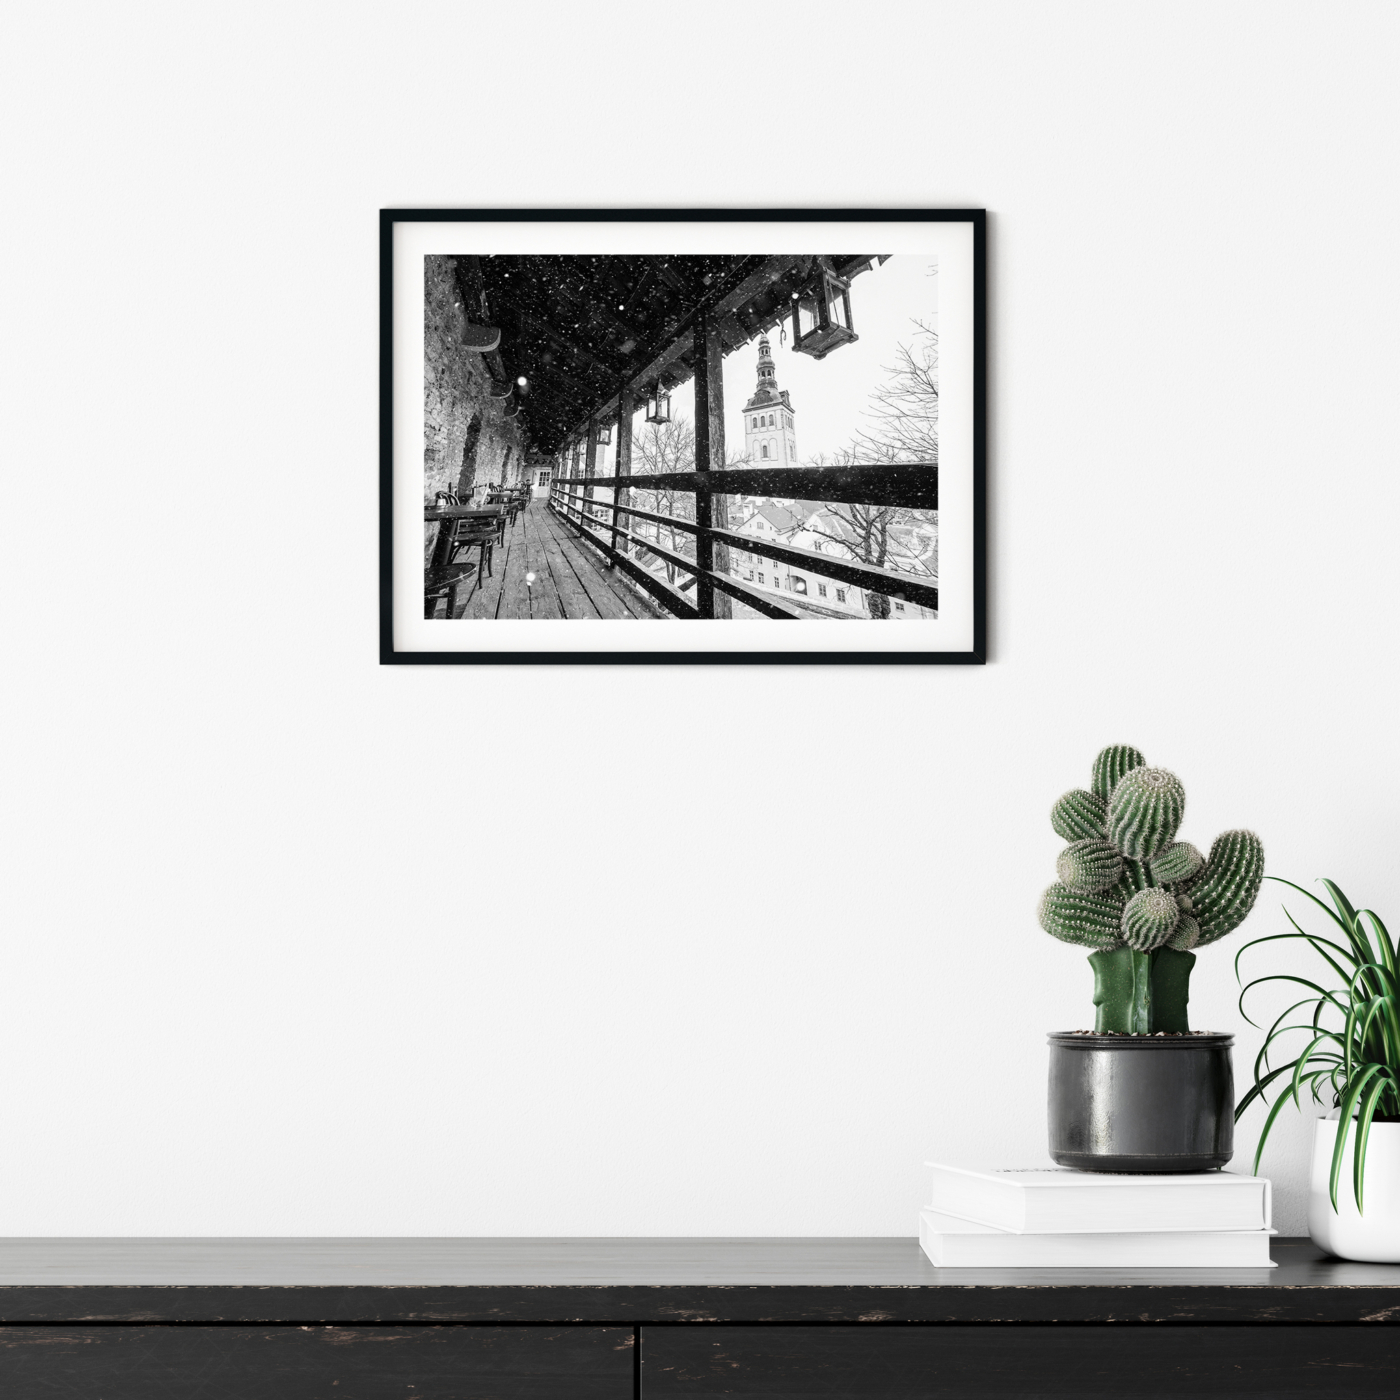 Winter in Tallinn - black and white photography print in black frame with border on the wall in interior